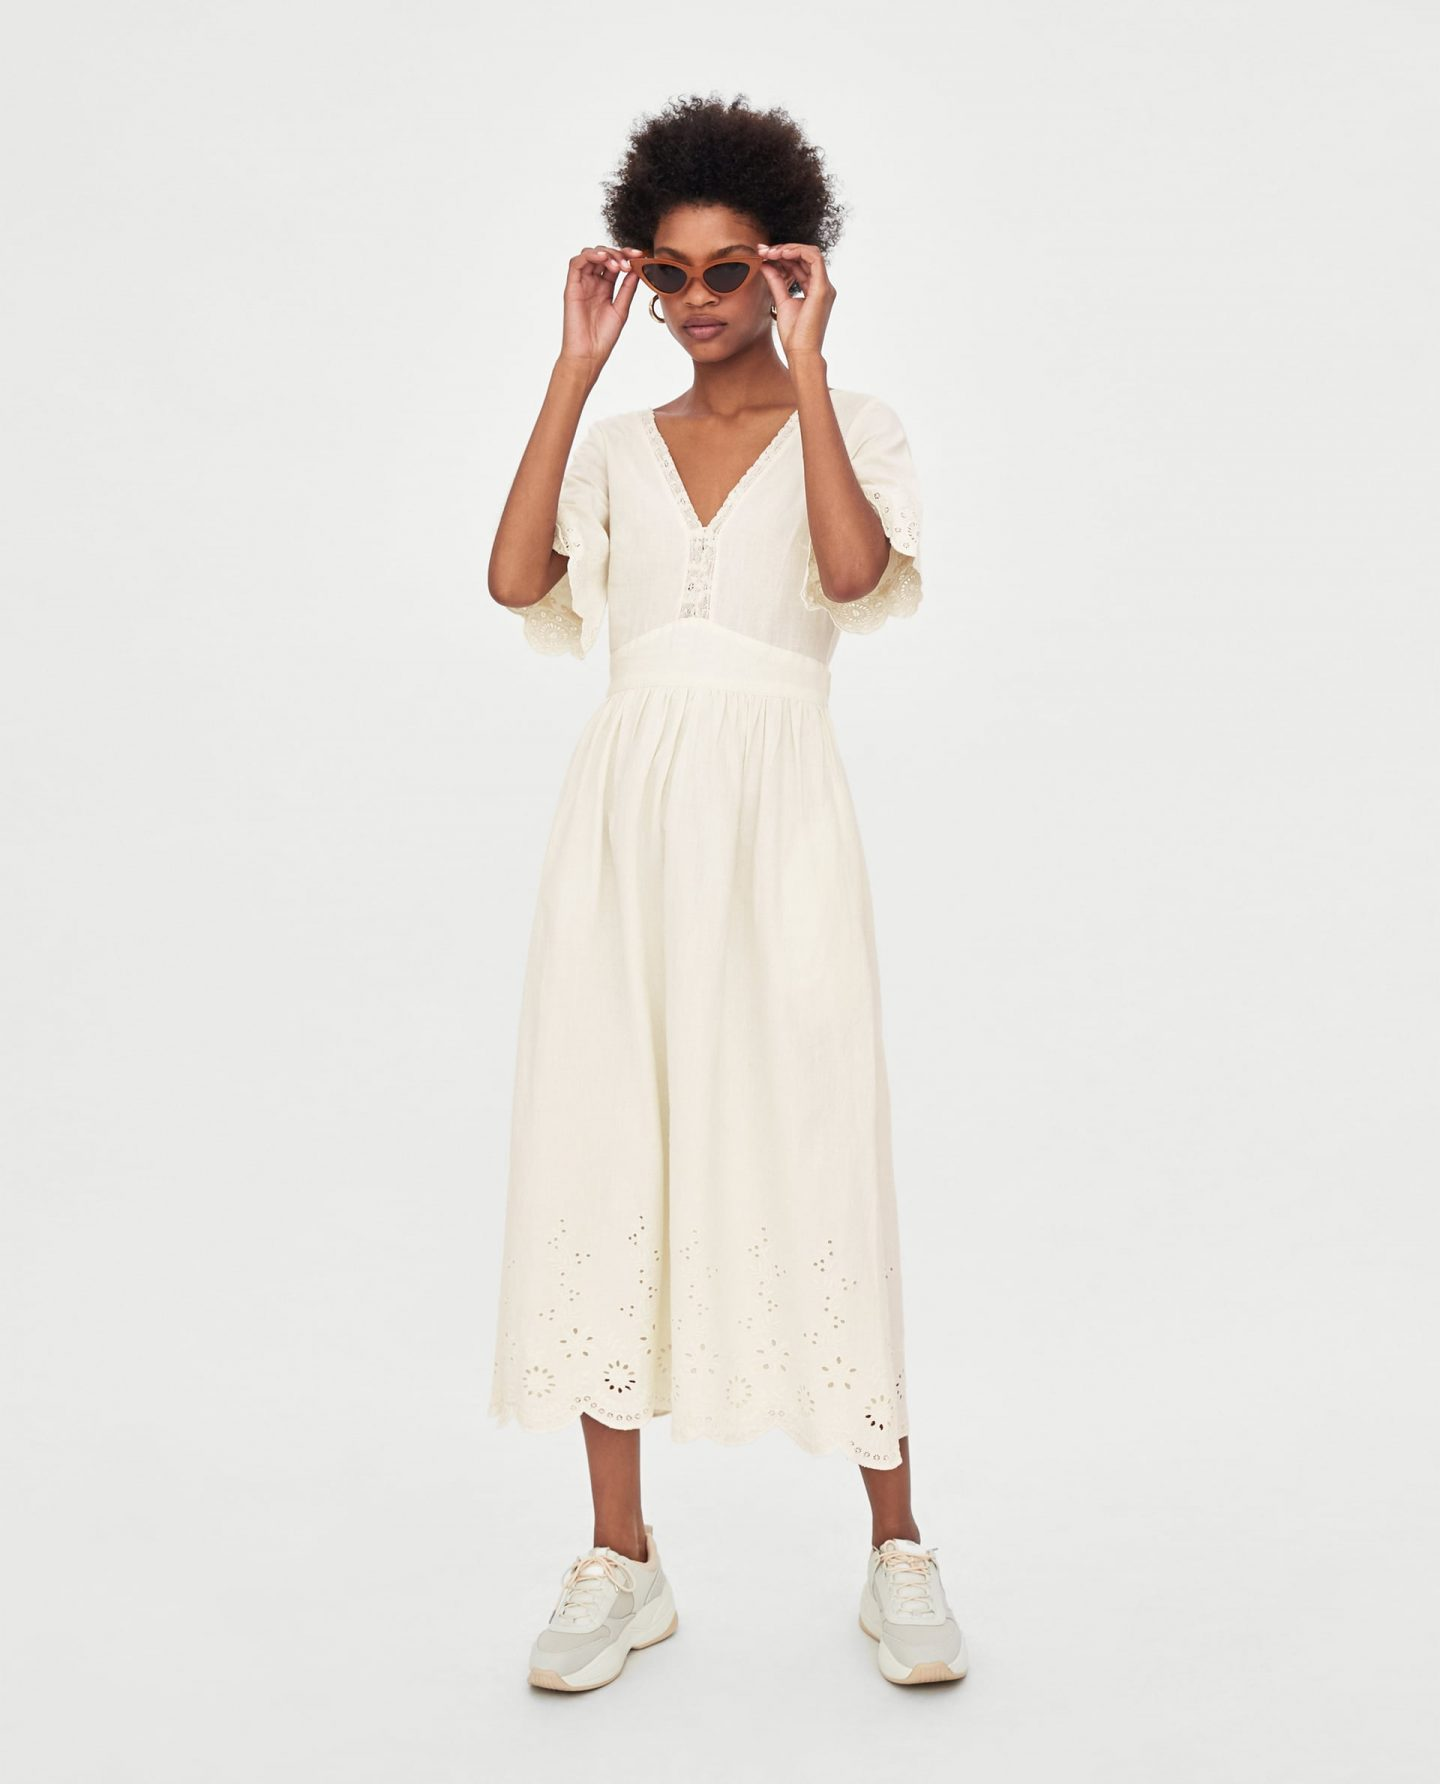 cd319d016c4 https   www.zara.com ie en embroidered- Pin this image on Pinterest.  Embroidered midi dress ...